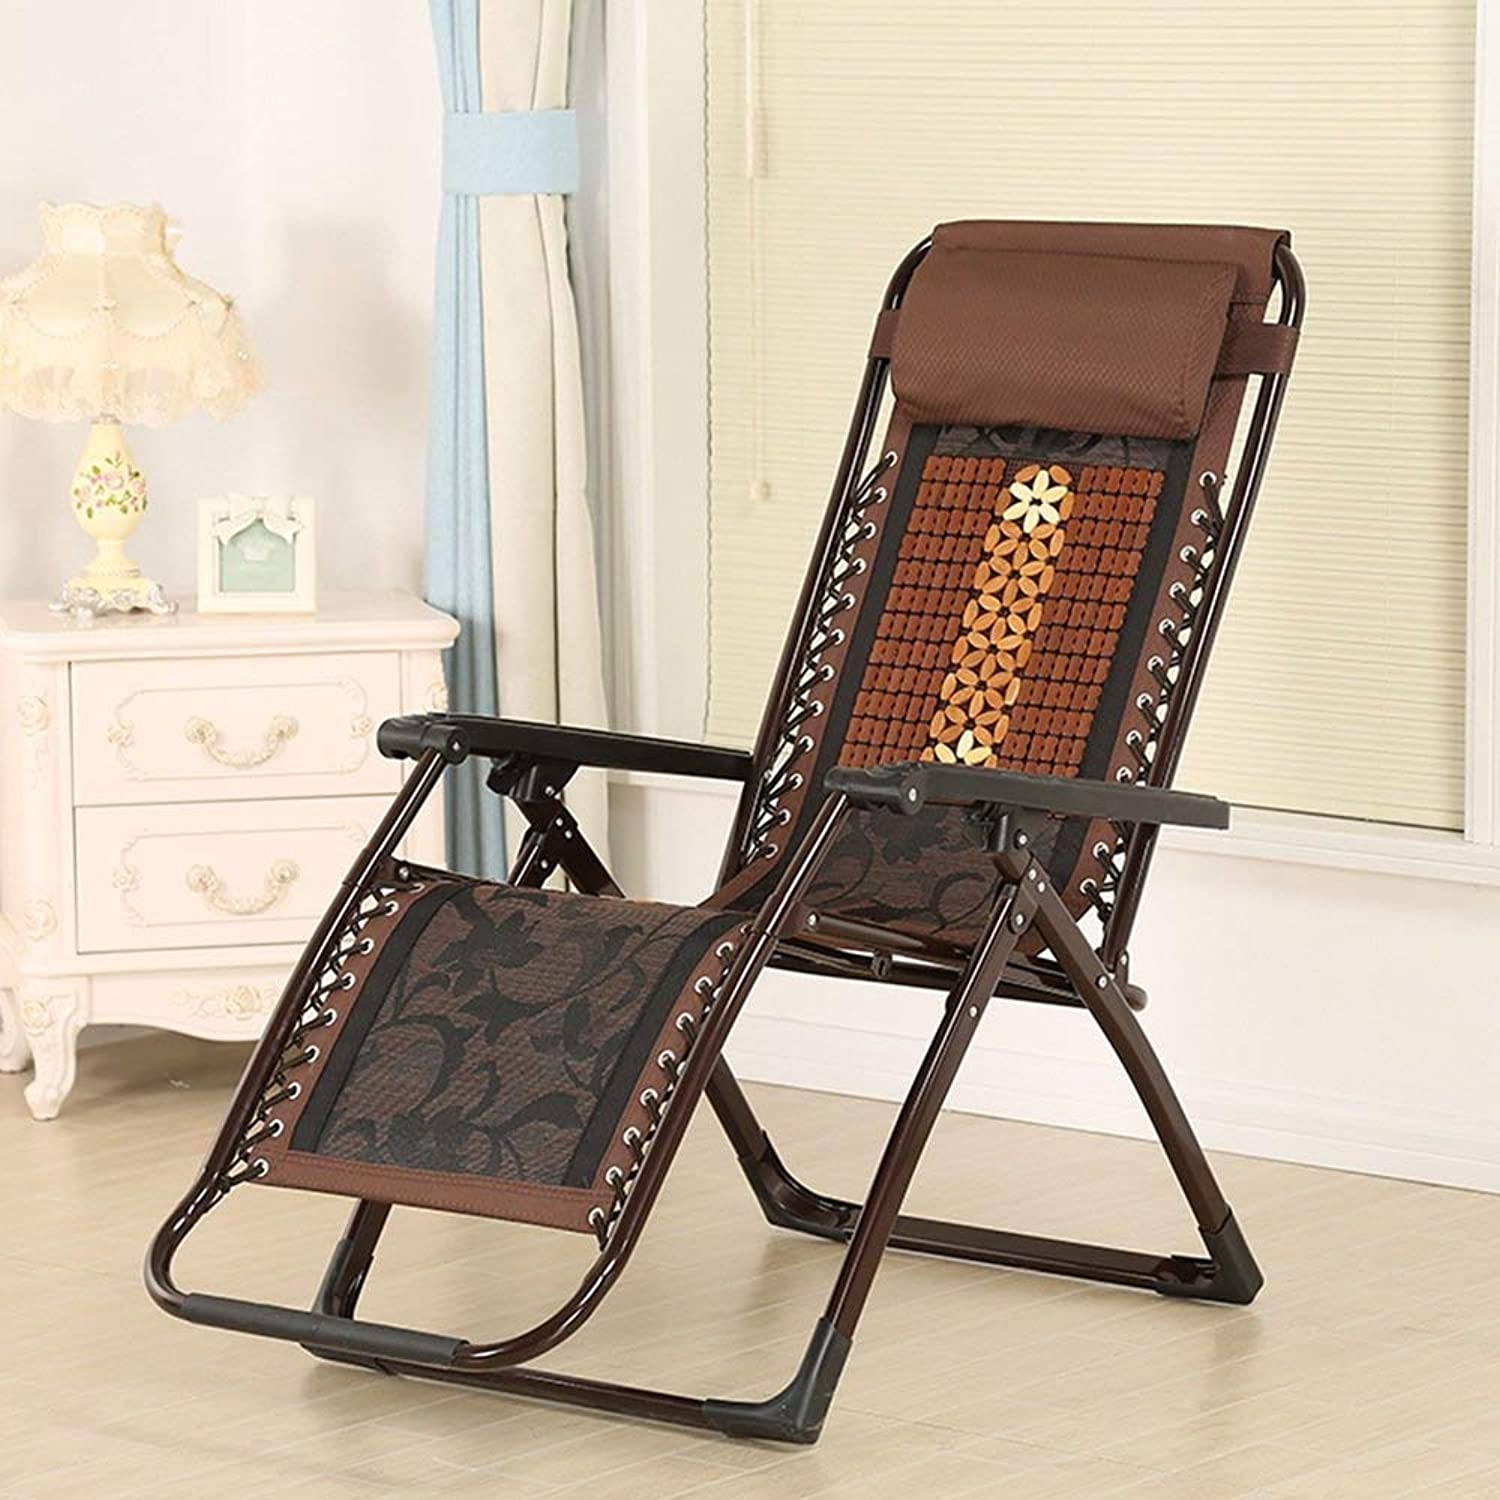 AG Dormitory Bed Chair, Student Lazy Chair, College Dormitory Artifact Sun Loungers Folding Recliner Square Tube Mahjong Piece Bamboo Seat Recliner Chair Lunch Break Chair Office Leisure Chair Napp